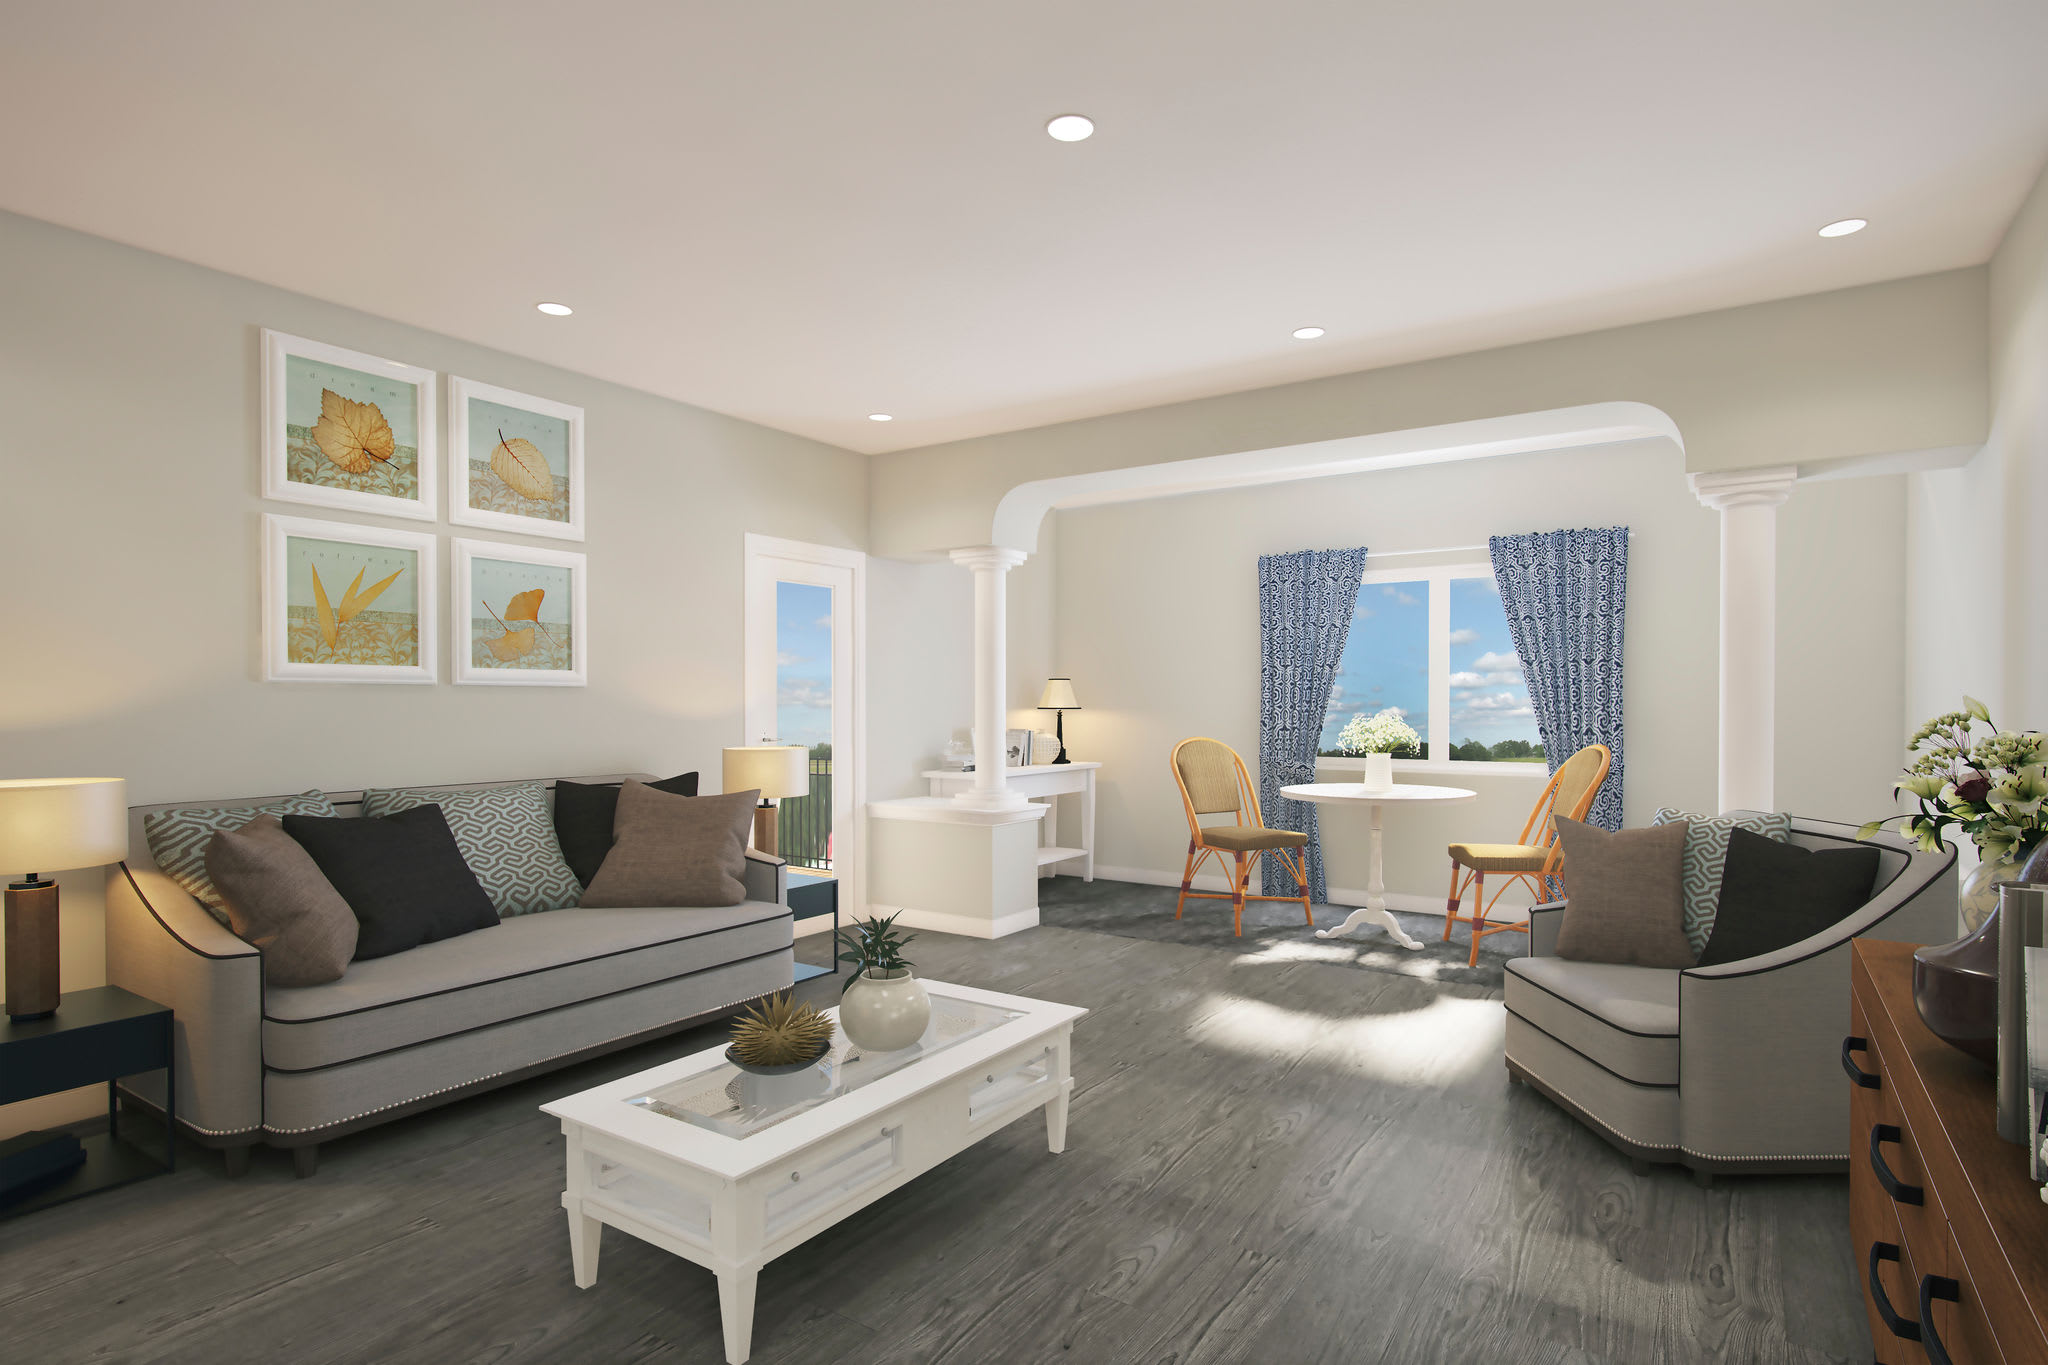 Model living room at Keystone Place at Richland Creek in O'Fallon, Illinois